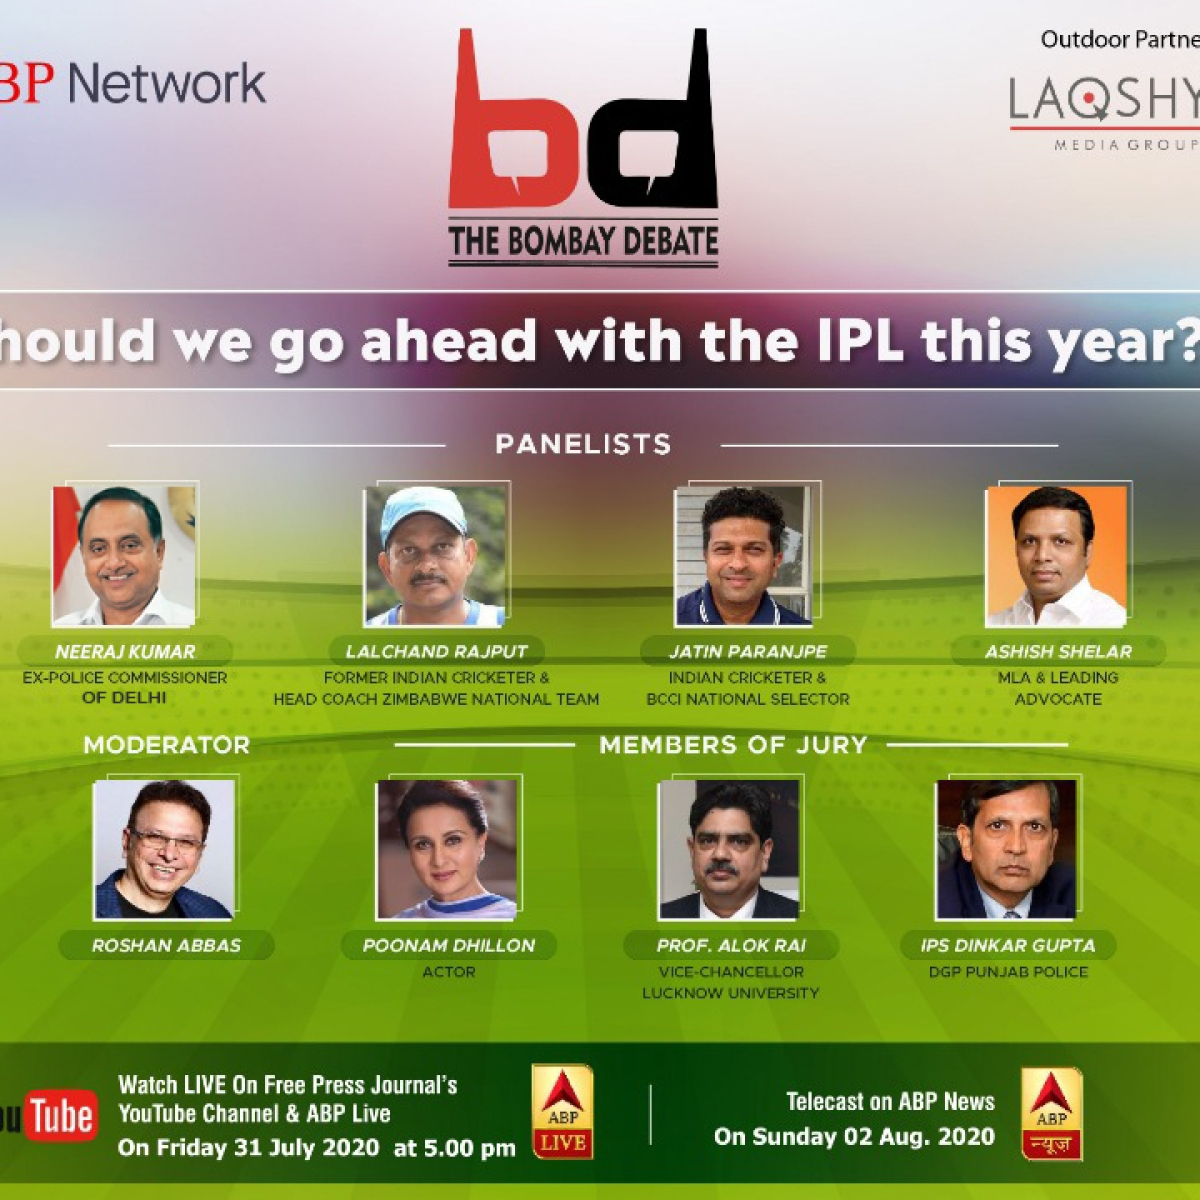 The Bombay Debate: Highlights from the stellar discussion on IPL 2020